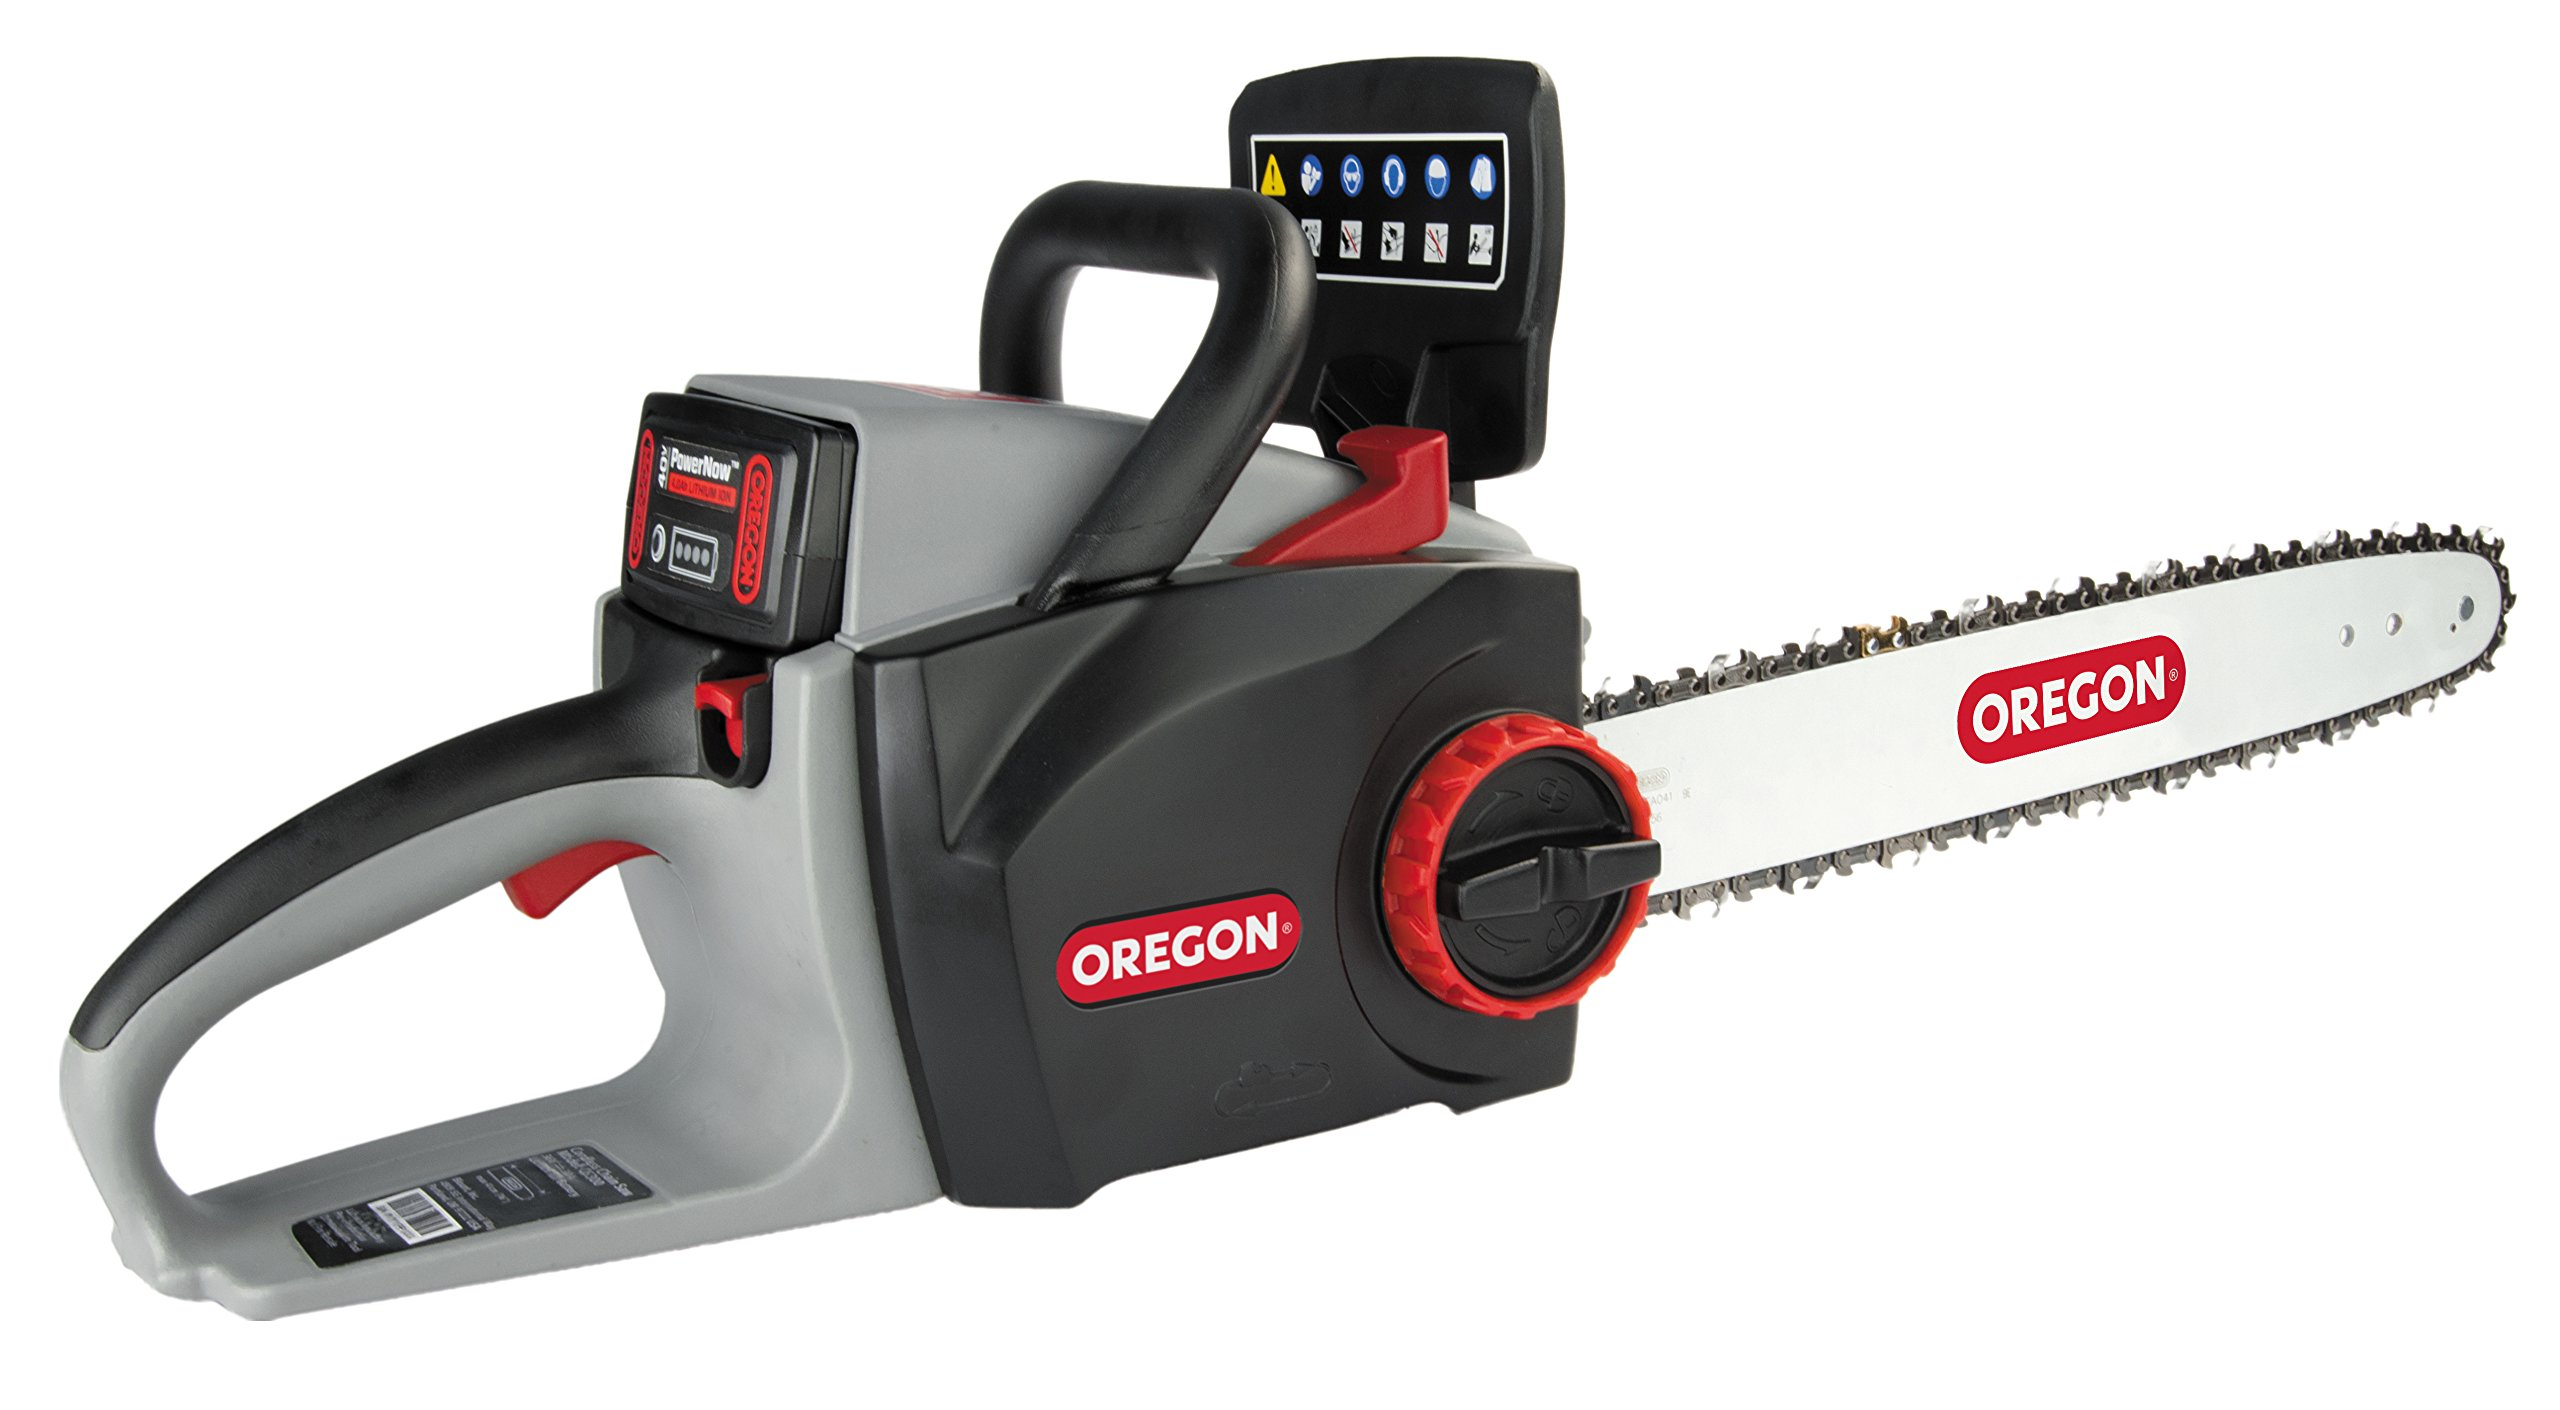 Oregon Cordless 16-inch Self-Sharpening Chainsaw – Battery and Charger not Included